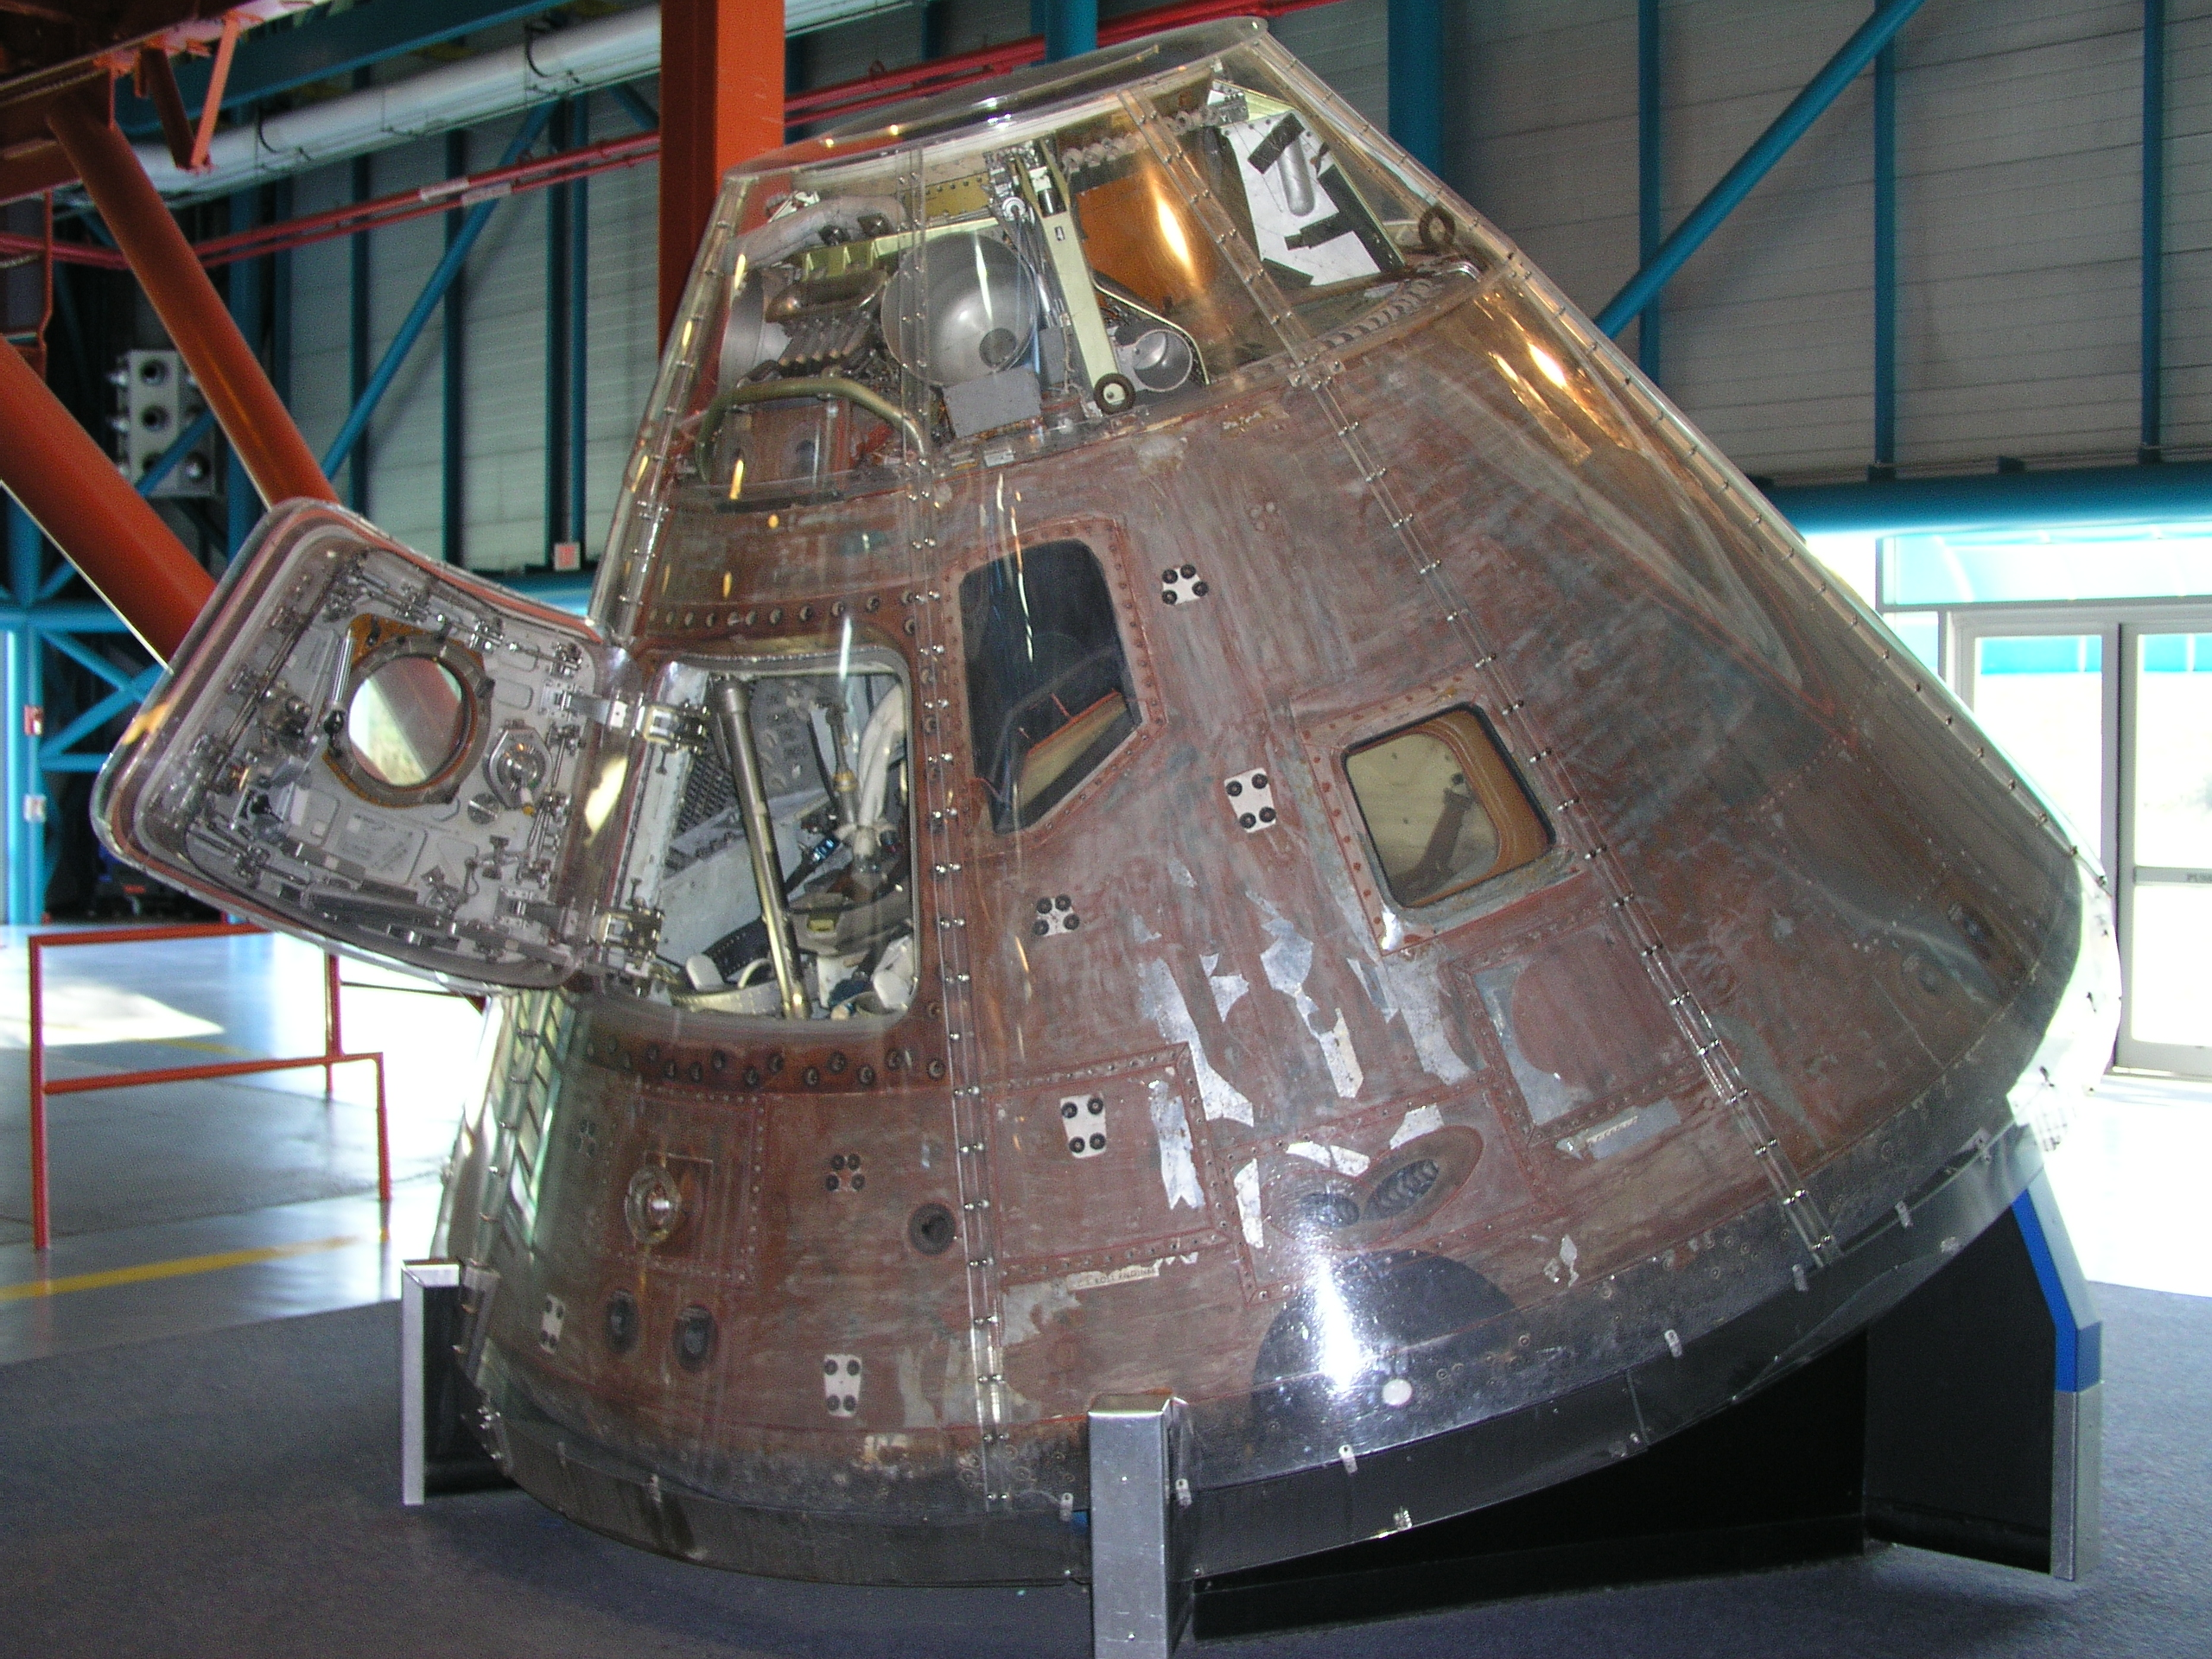 Apollo Command Modules - Nasa museums in usa